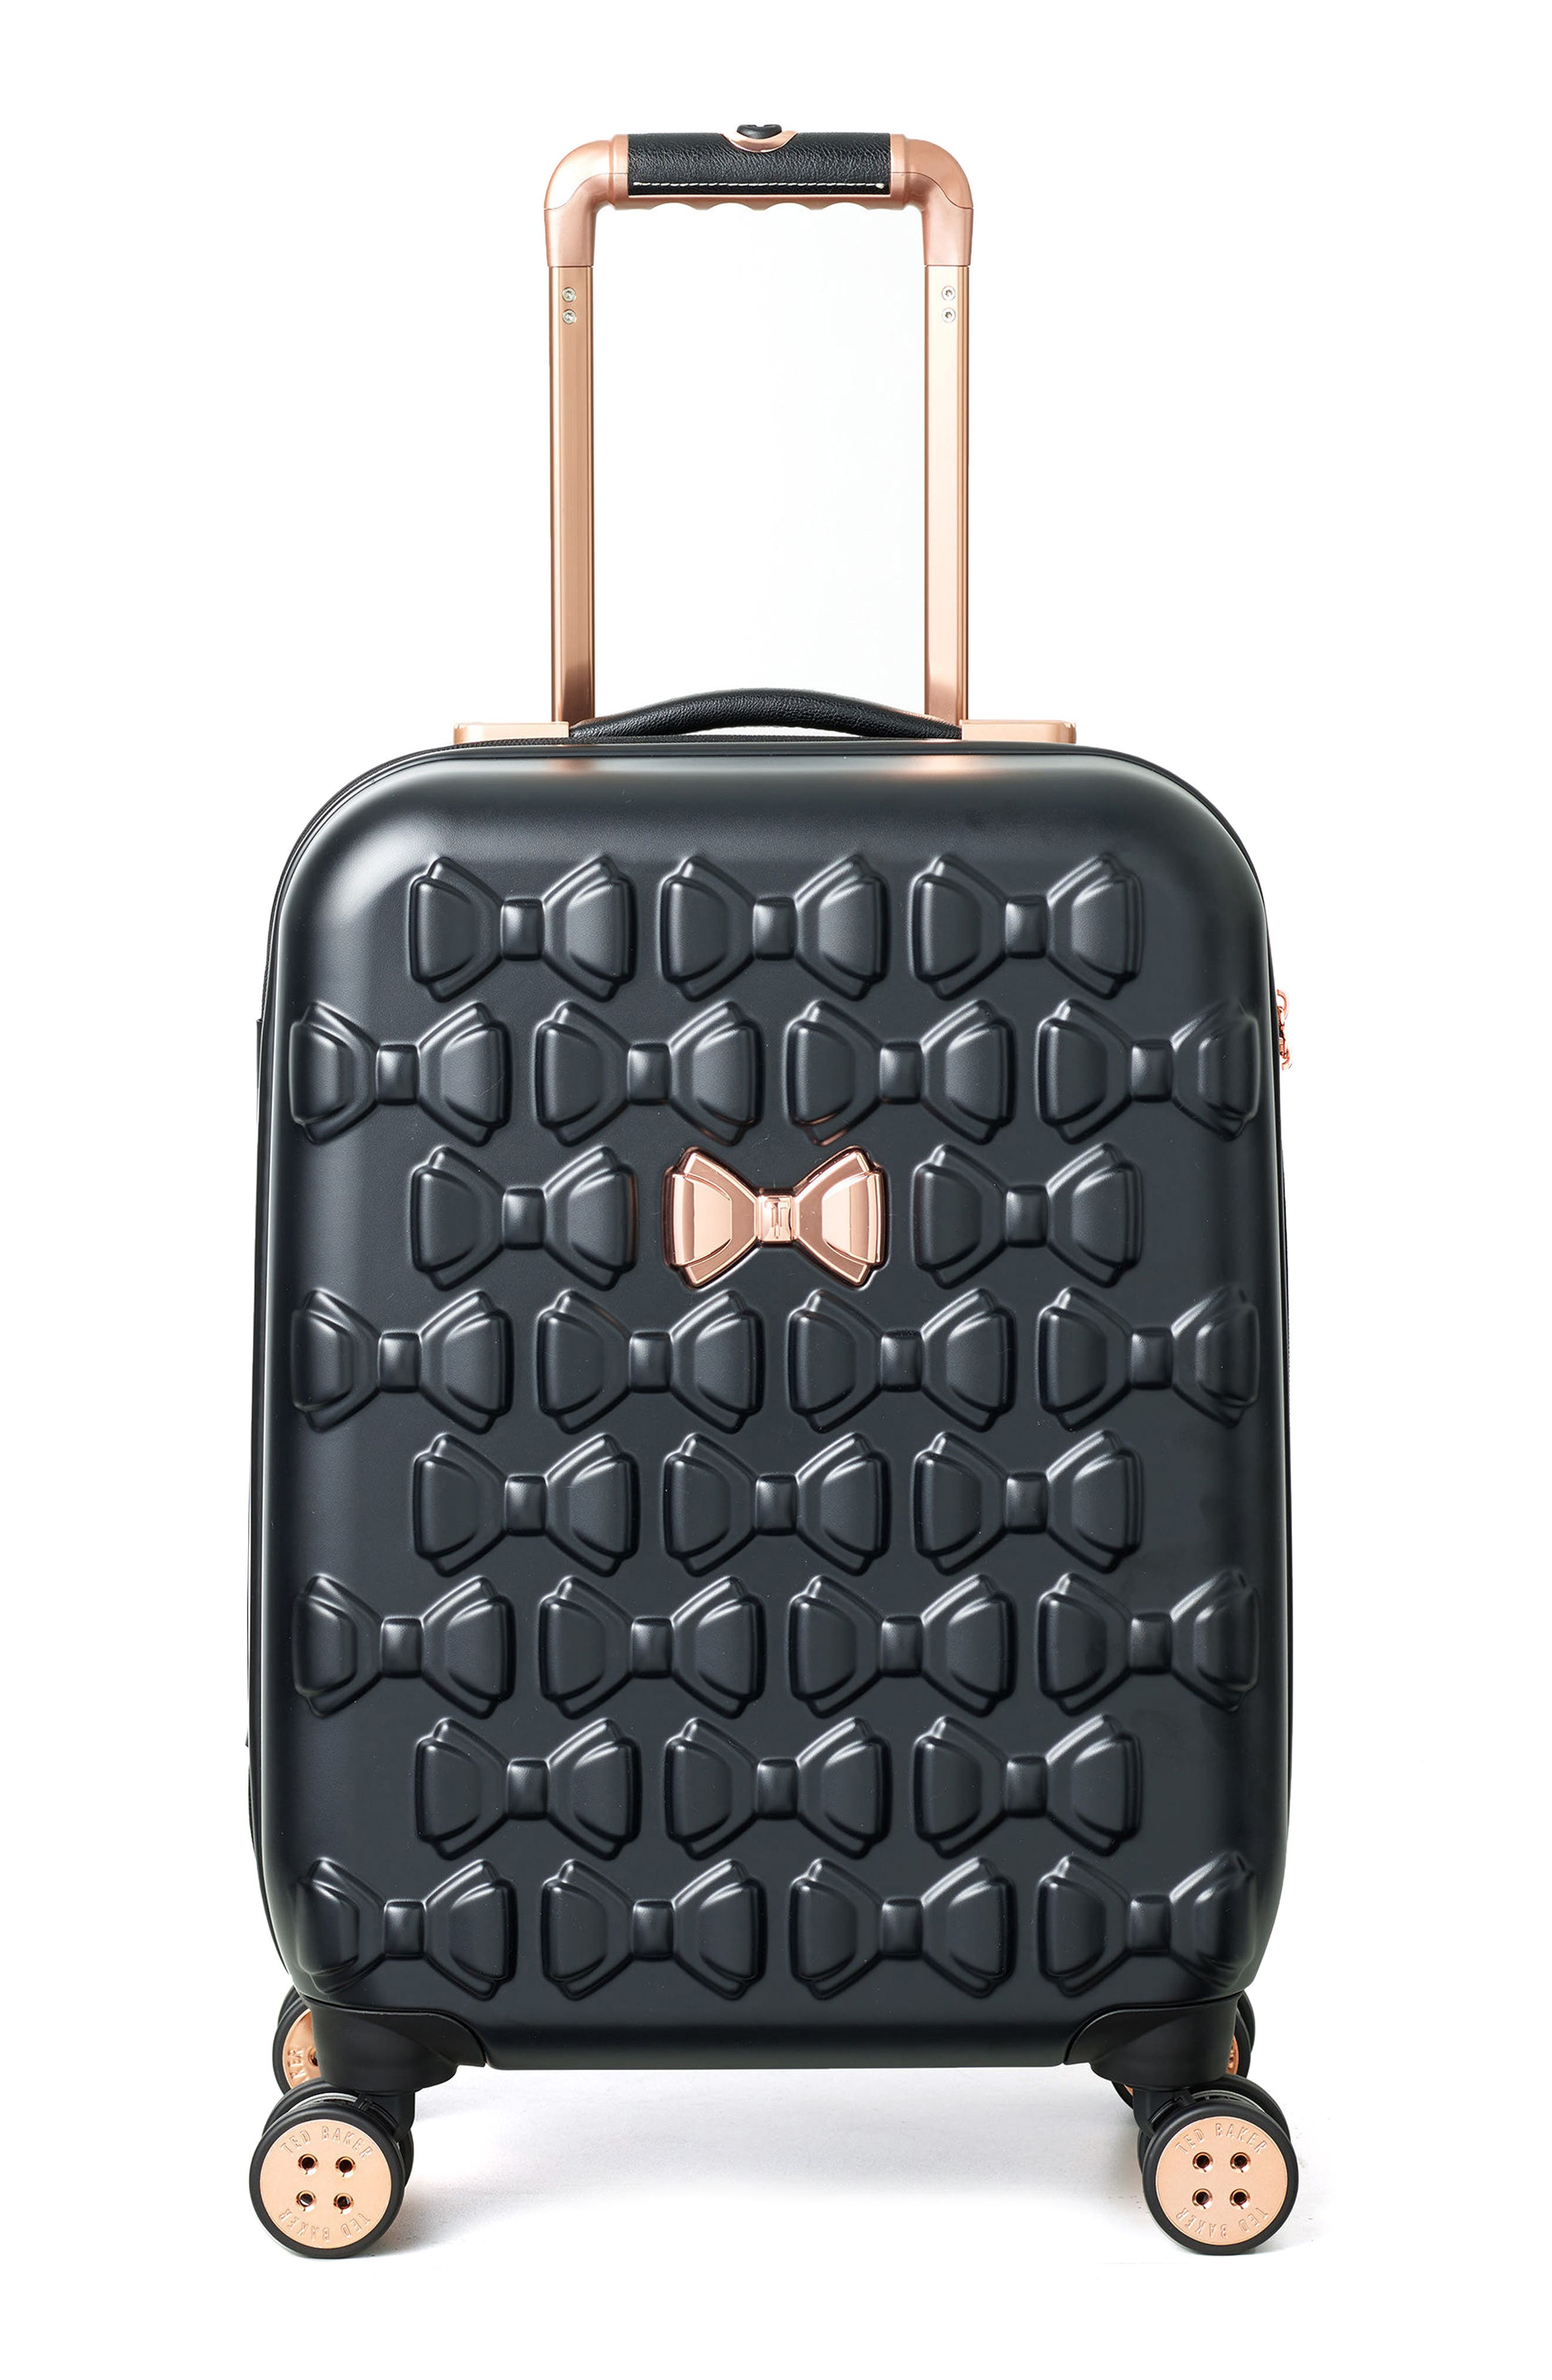 TED BAKER LONDON, Small Beau 22-Inch Bow Embossed Four-Wheel Trolley Suitcase, Main thumbnail 1, color, BLACK